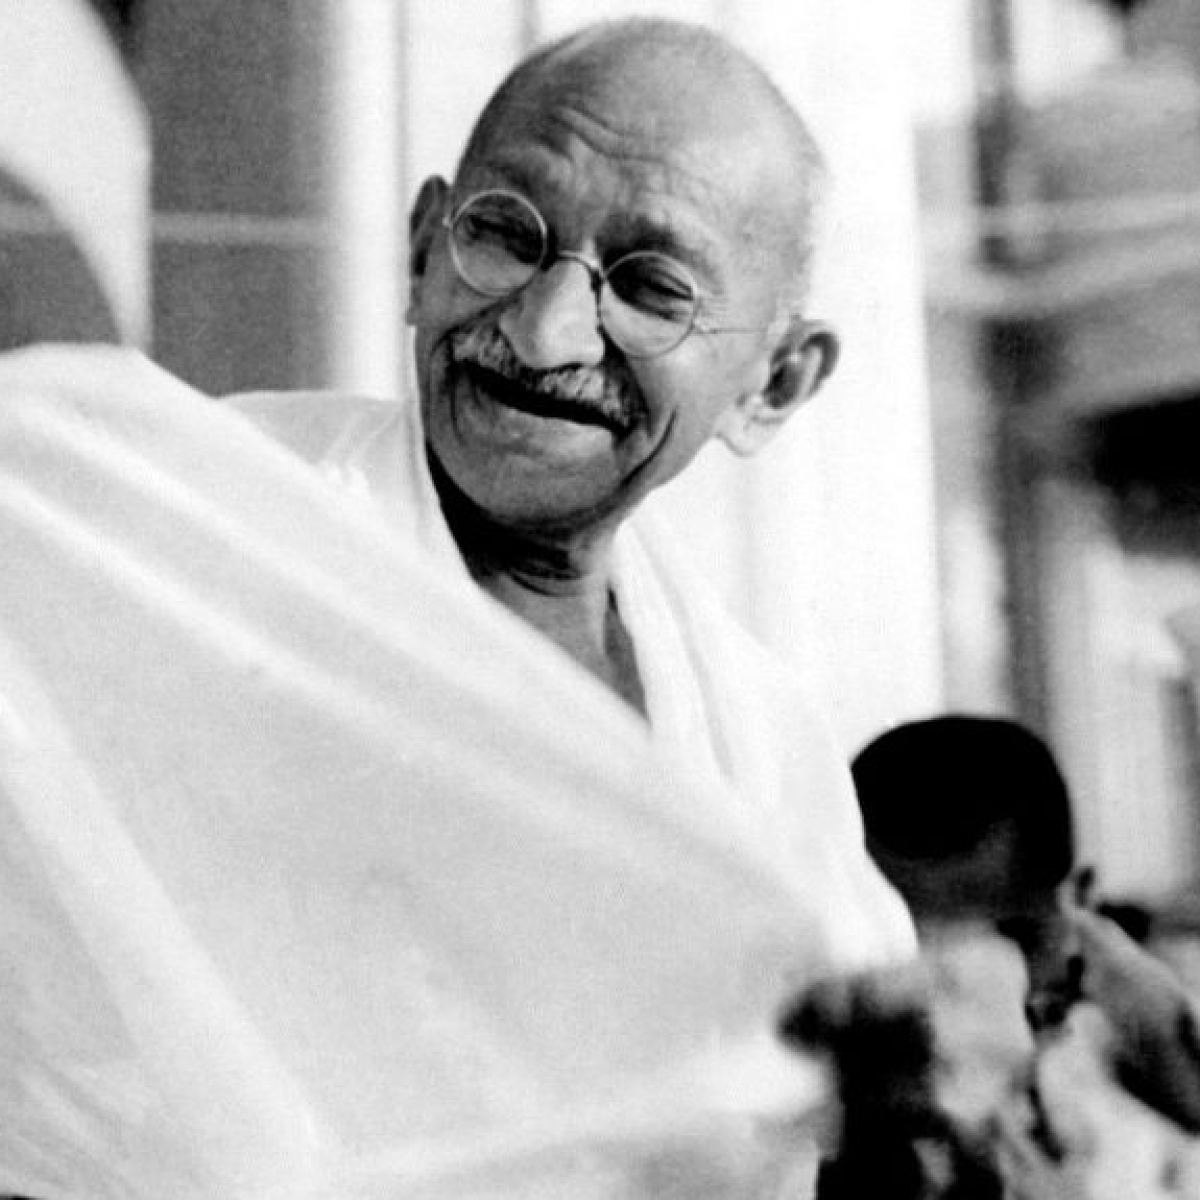 Gandhi statue vandalised in California; Indian govt seeks action against those responsible for 'despicable act'